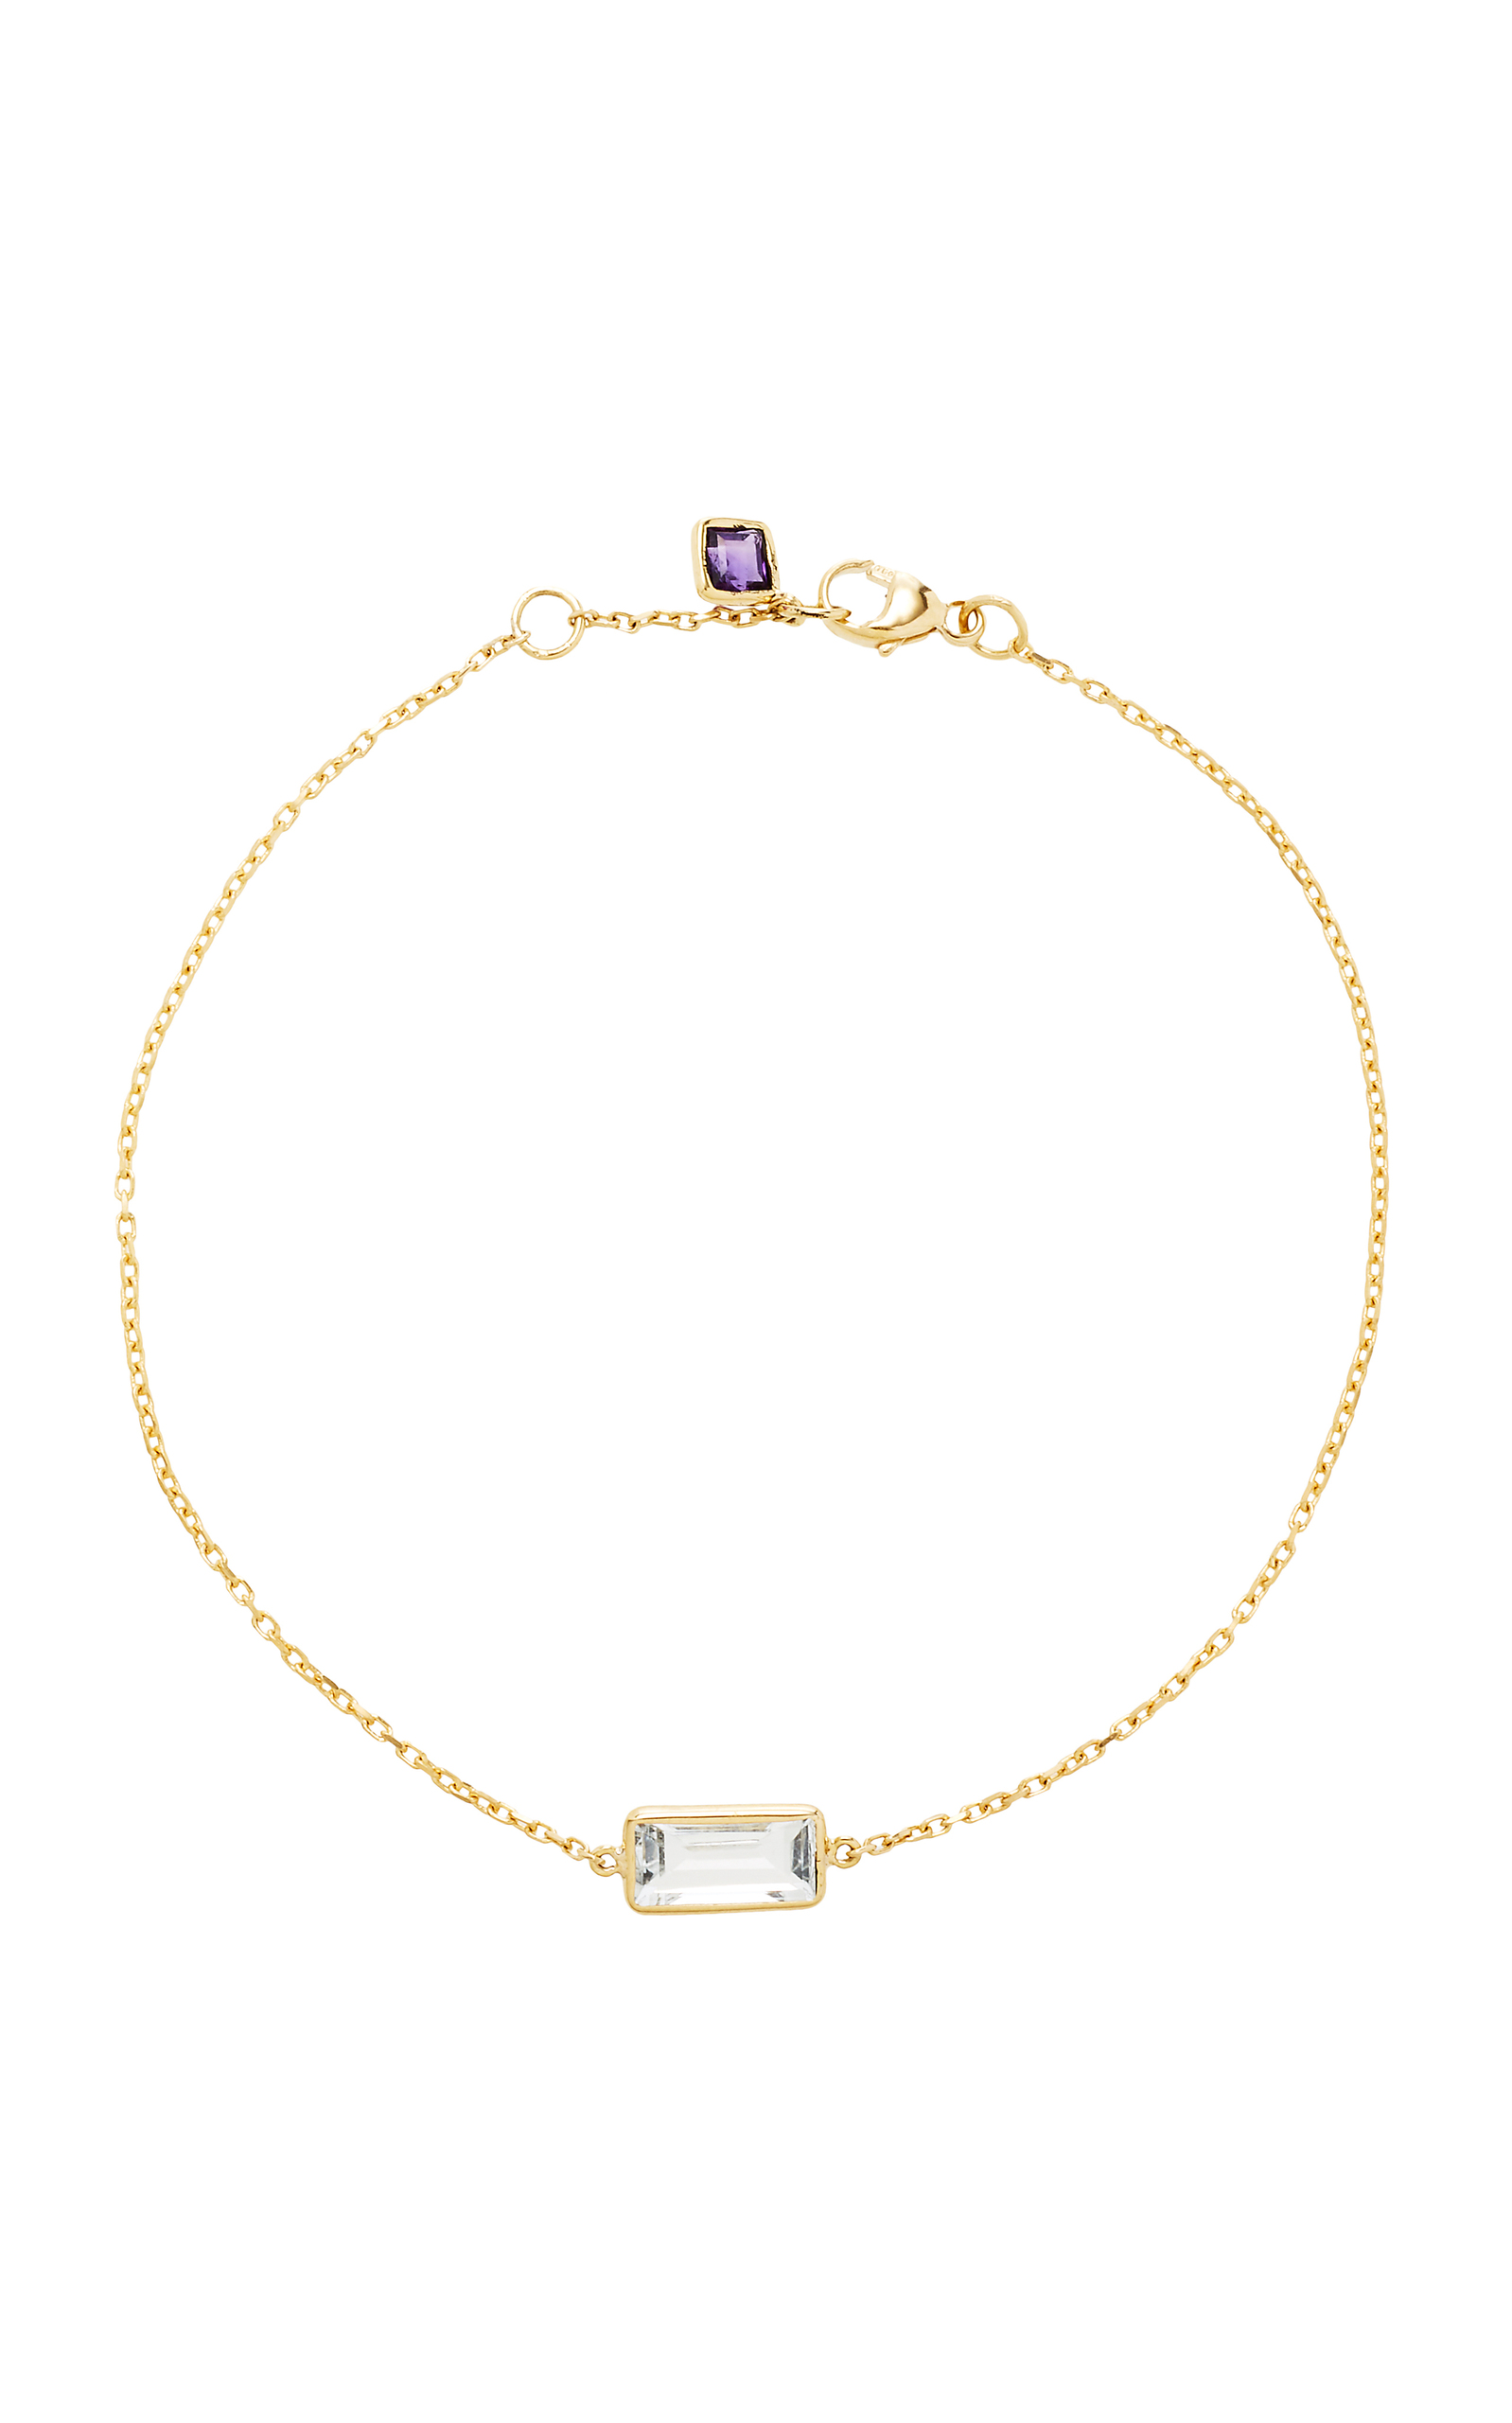 YI COLLECTION 18K GOLD WHITE TOPAZ AND AMETHYST BRACELET